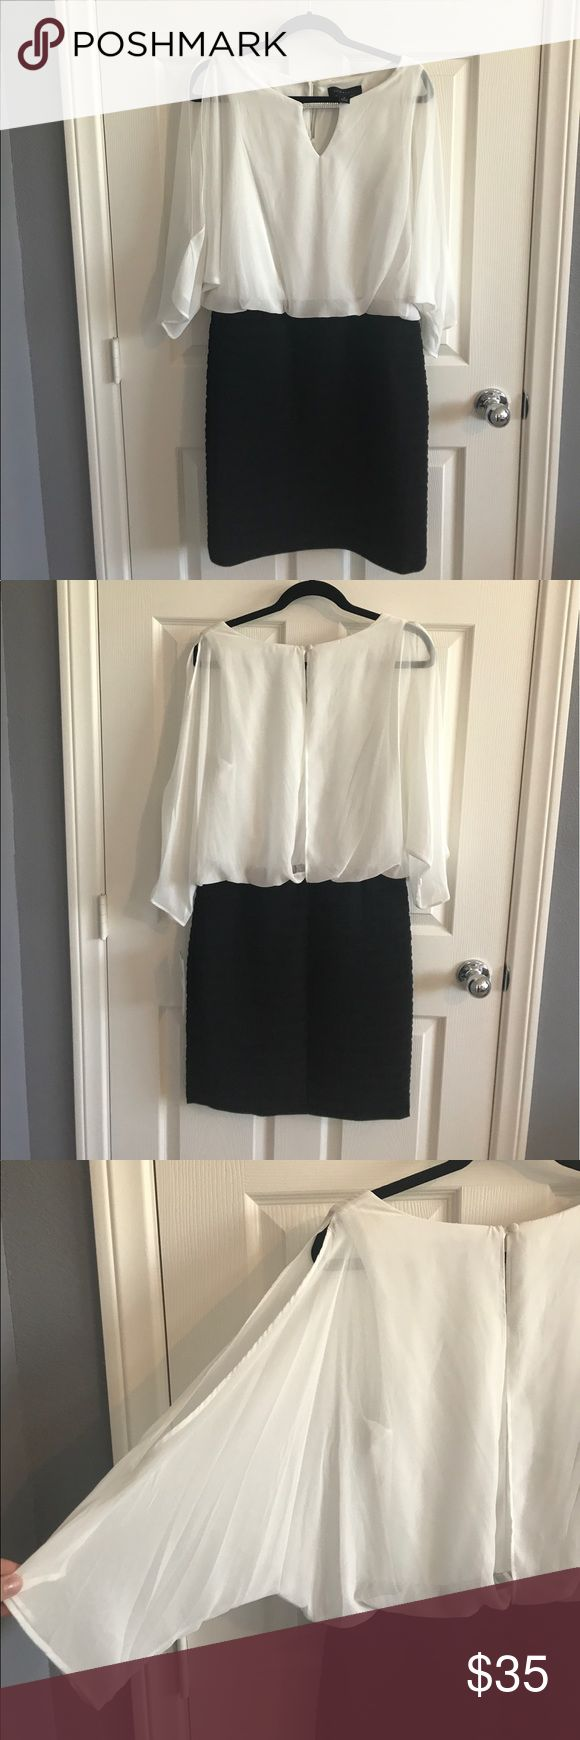 🌟SALE🌟 Semi-Formal Dress • Scarlett NWT • BEAUTIFUL Dress with on trend details in the sleeves, neckline, and back • Black and white • Loose fitting top portion is flattering for all • Size 10 • Never been worn • Scarlett Dresses